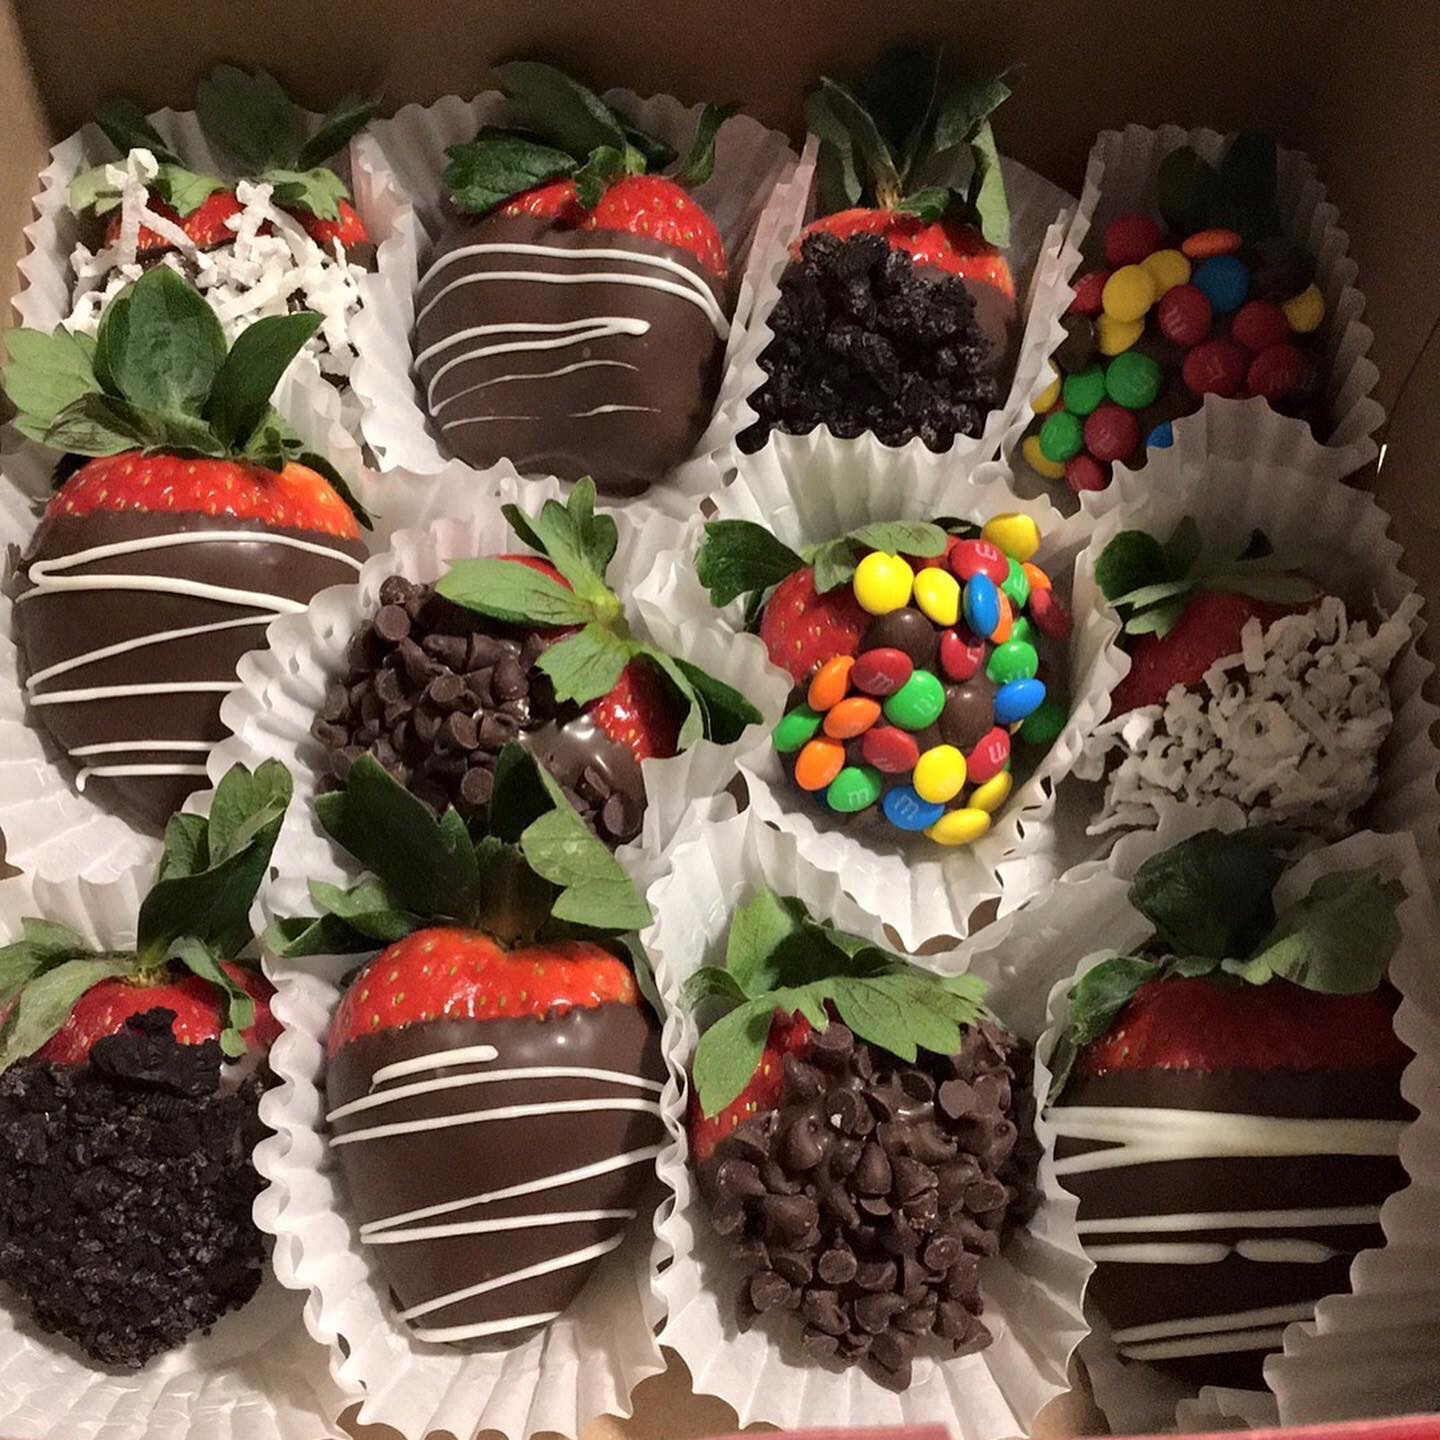 Deluxe Dipped Strawberries